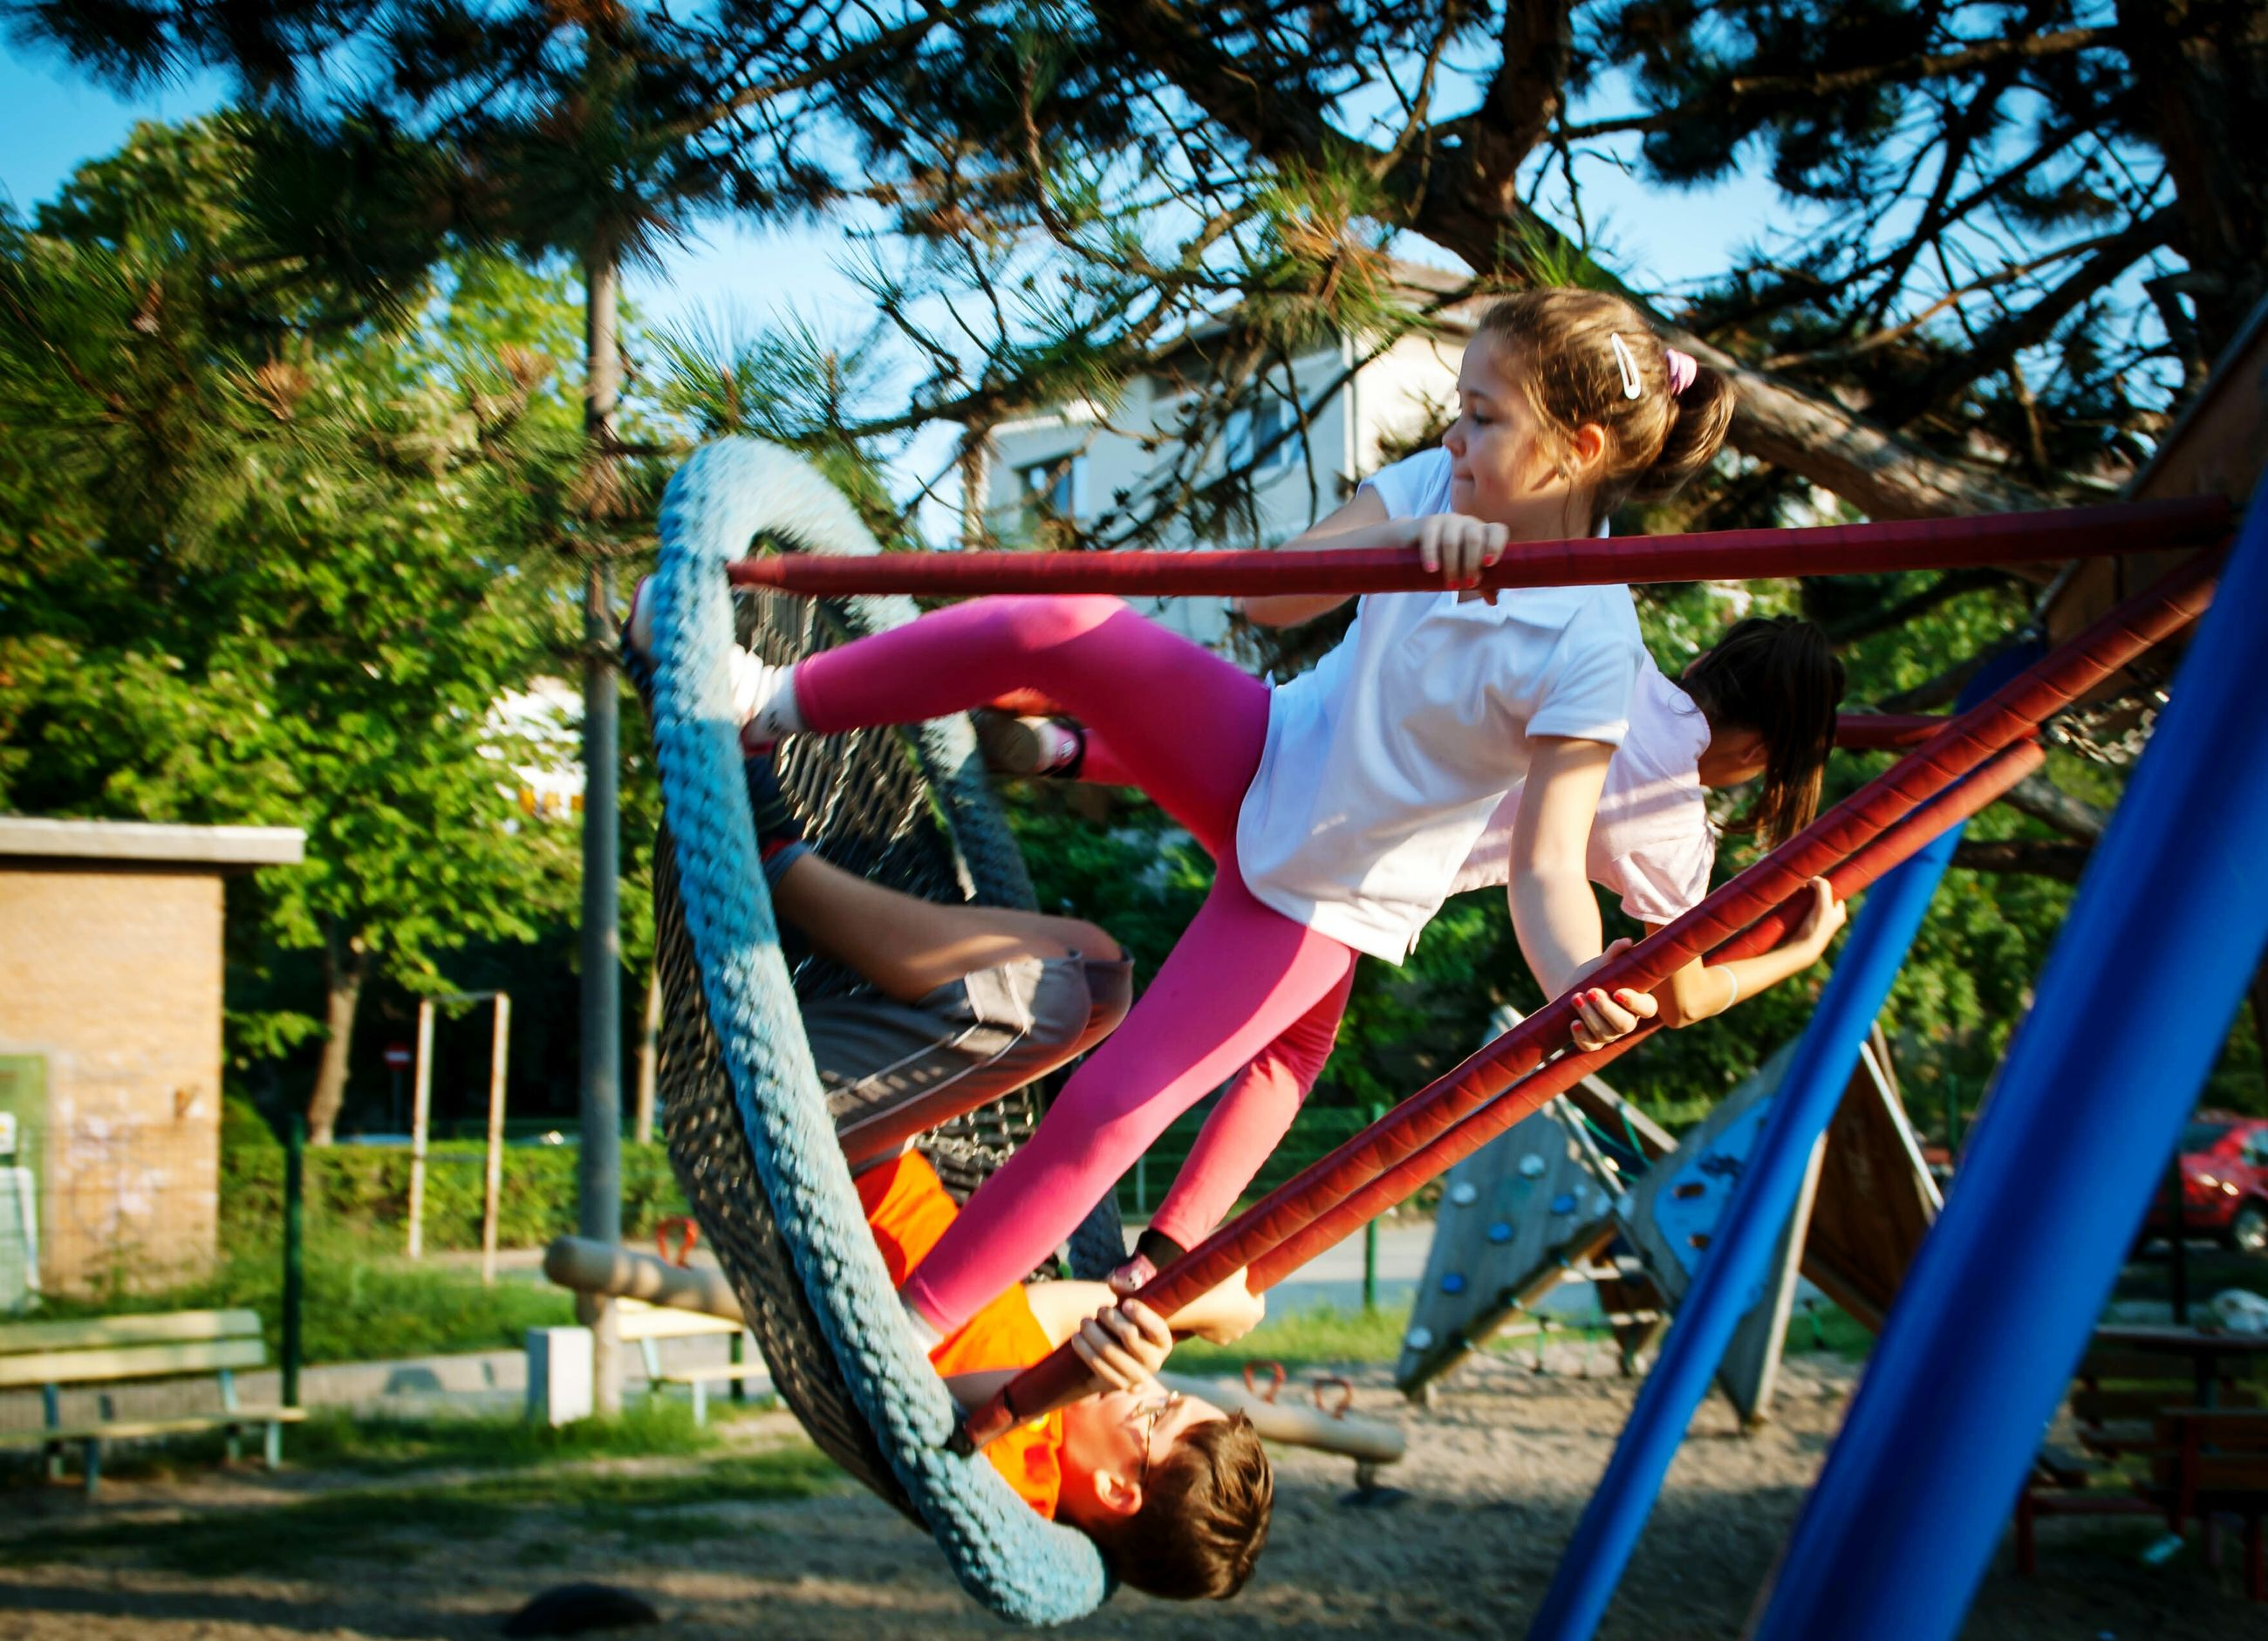 child, playground, childhood, full length, monkey bars, children only, people, real people, climbing, jungle gym, outdoor play equipment, outdoors, tree, adventure, day, one person, adult